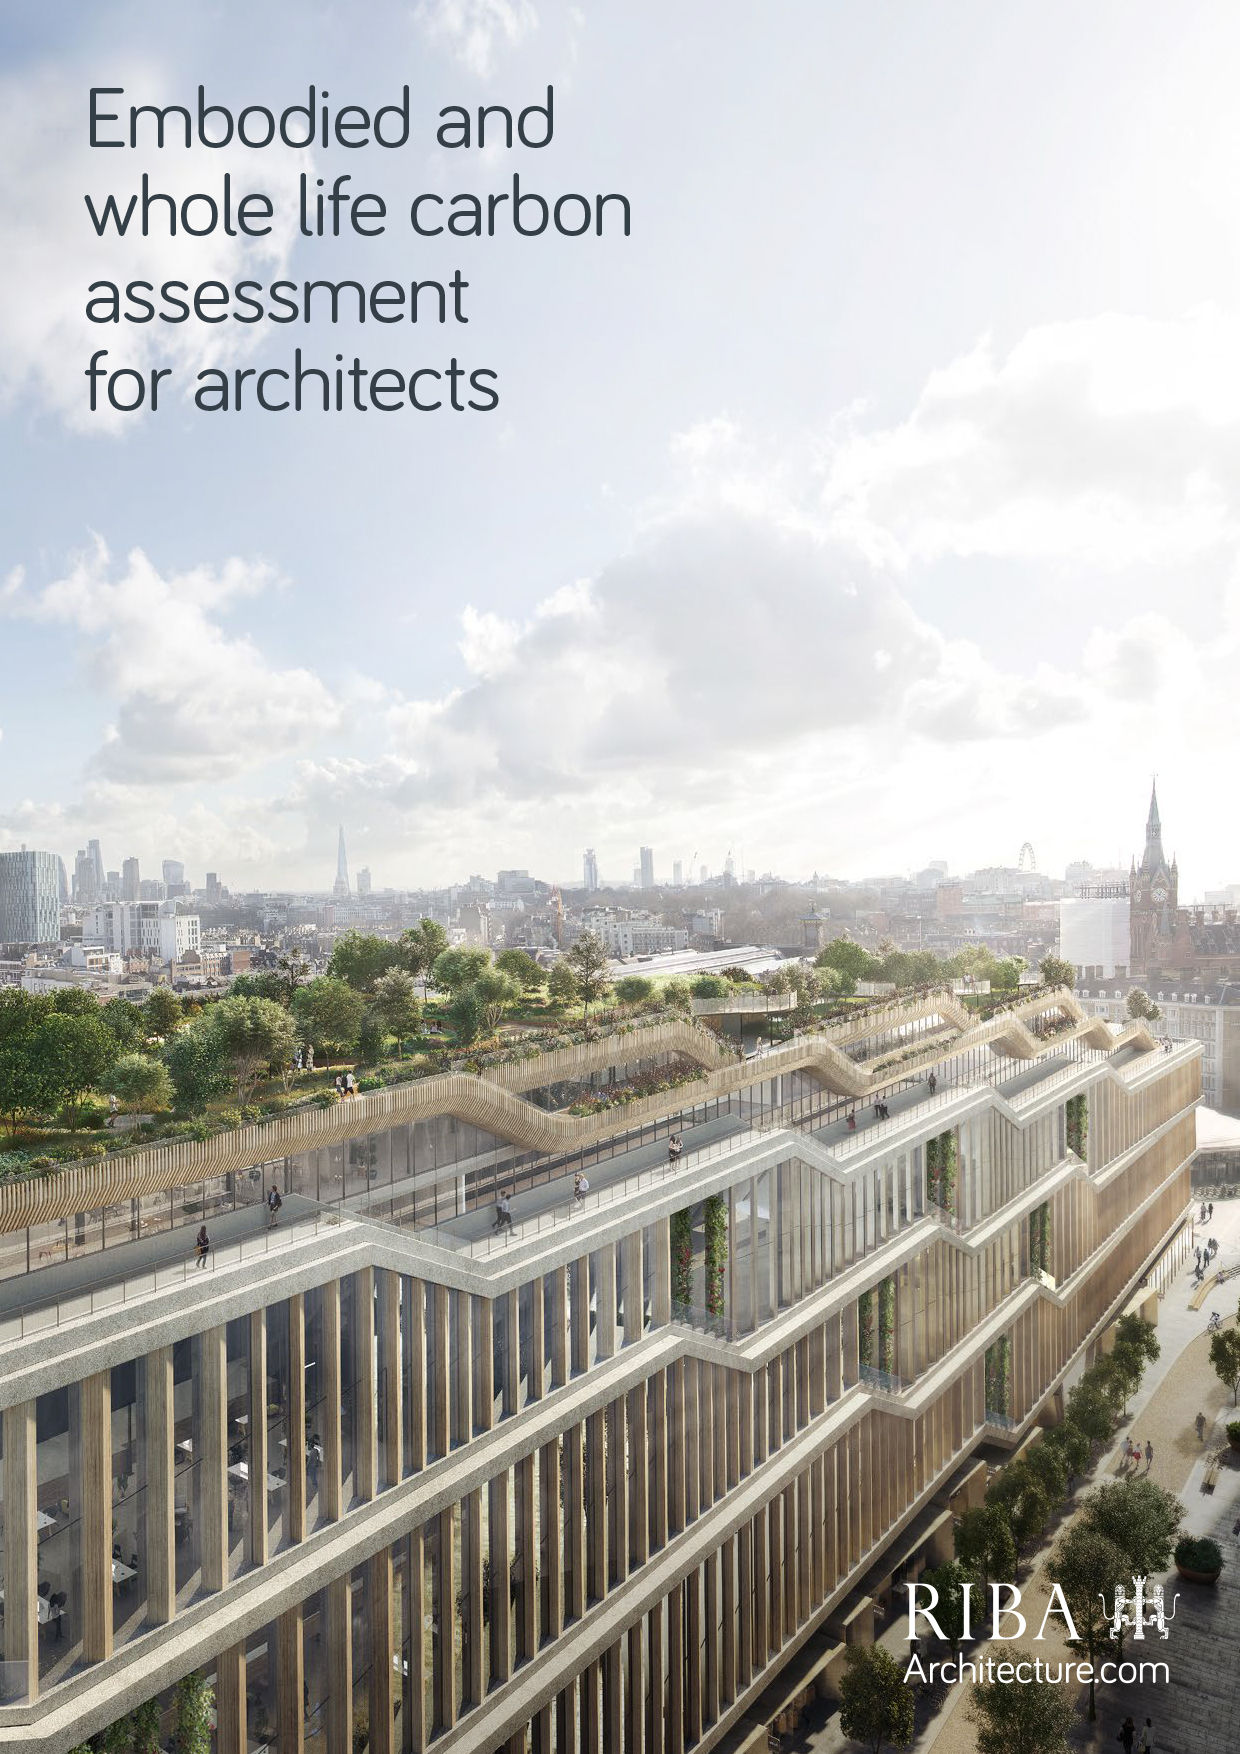 Whole Life Carbon Assessment for Architects